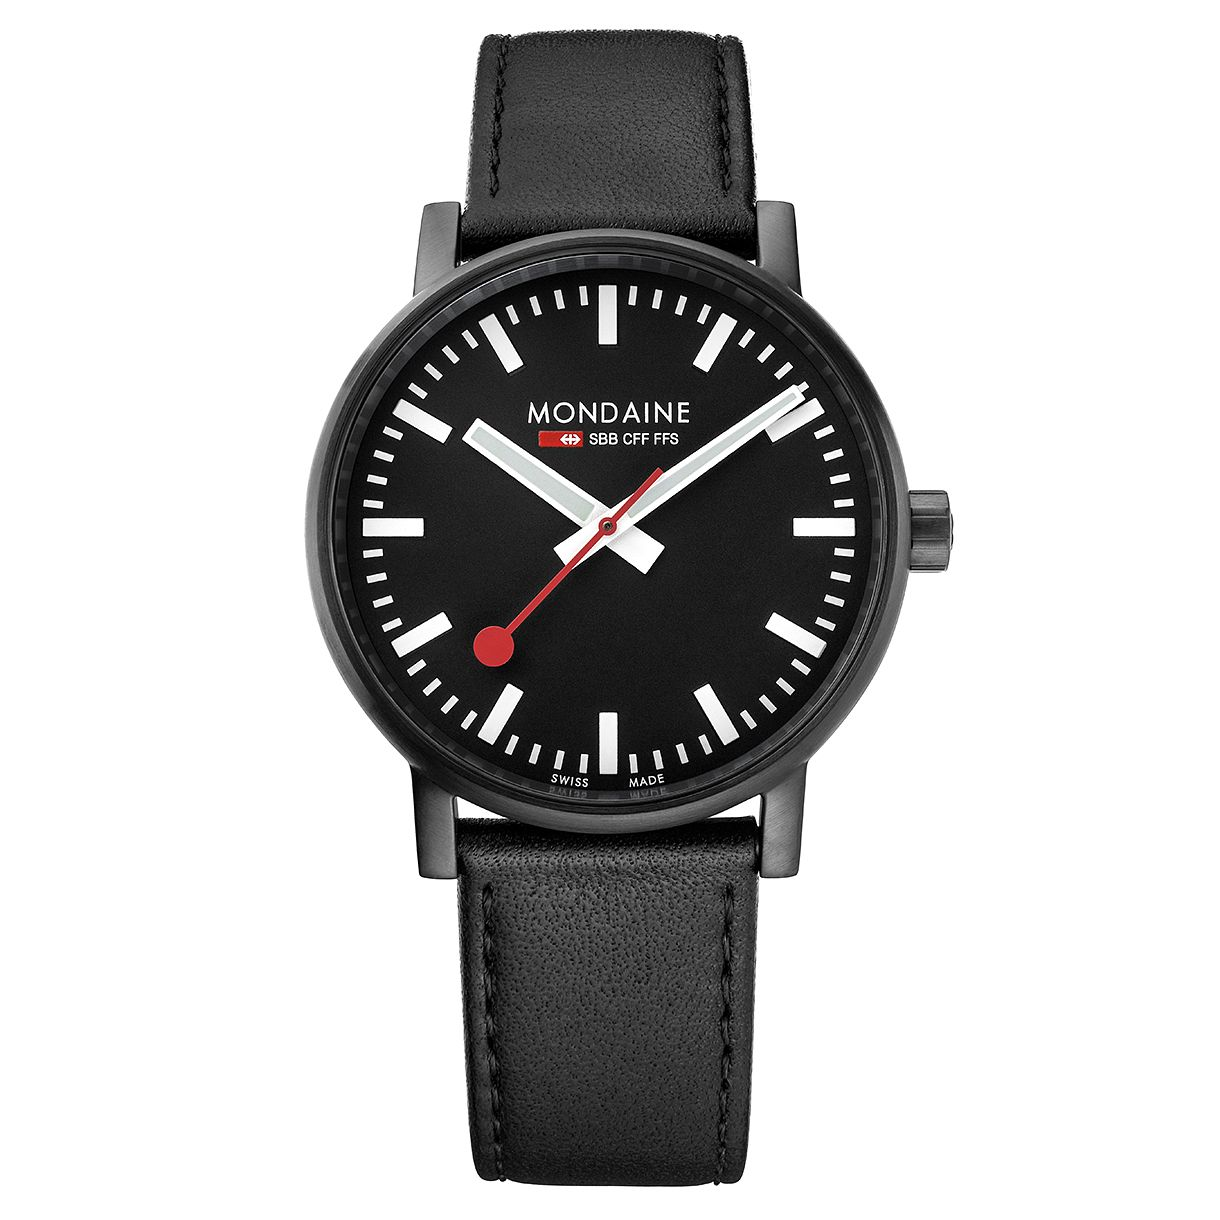 Mondaine SBB evo2 Men's Black Leather Strap Watch - Product number 8044058